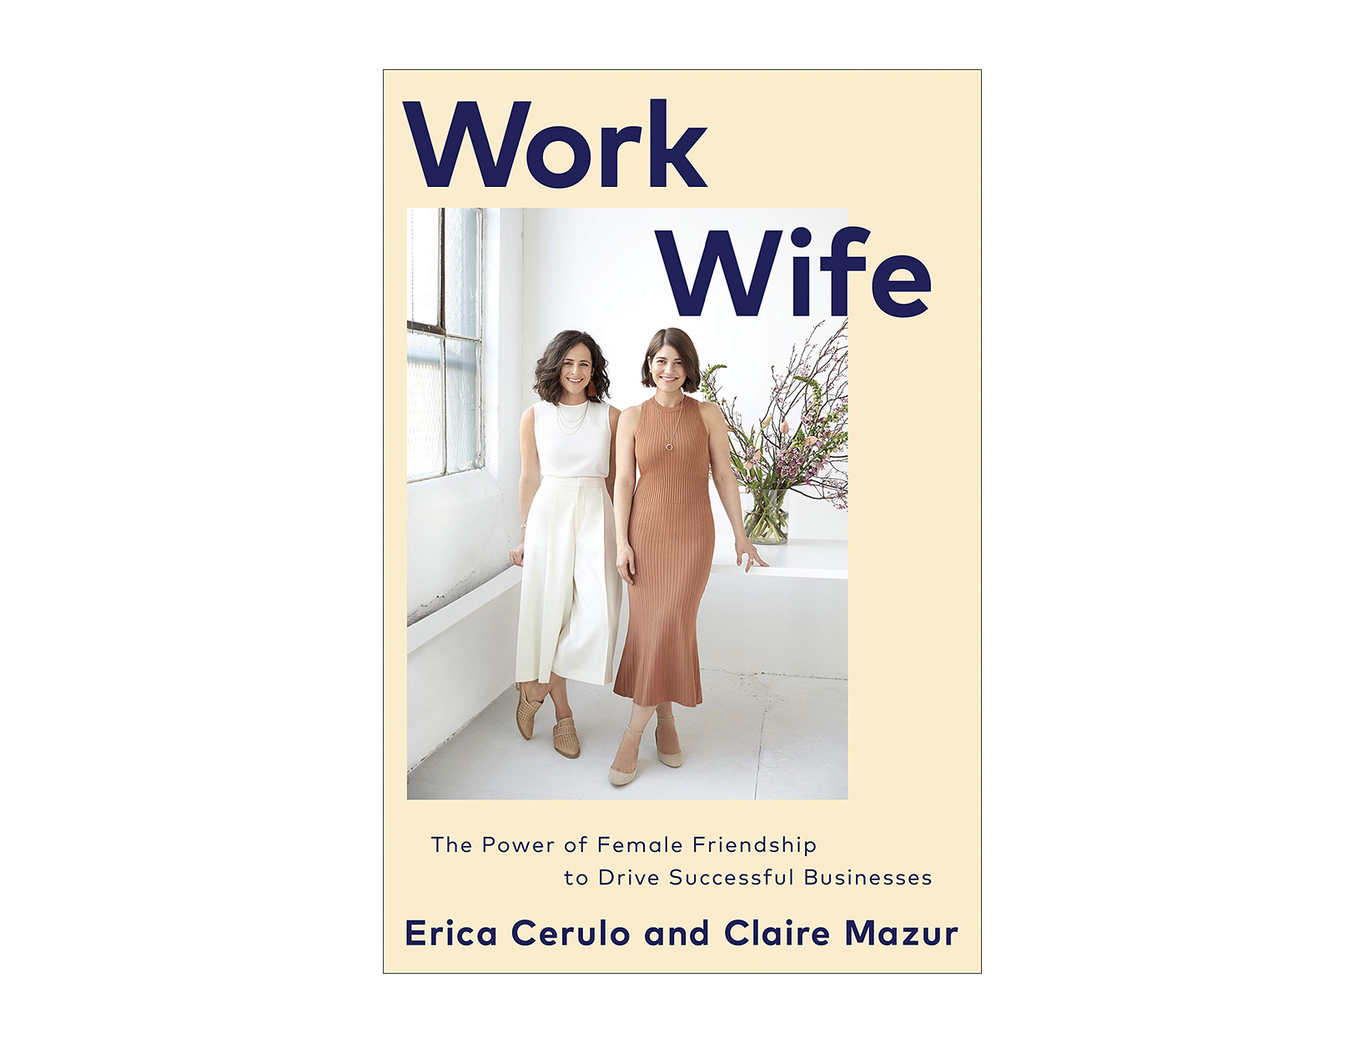 <em>Work Wife</em> by Erica Cerulo and Claire Mazur